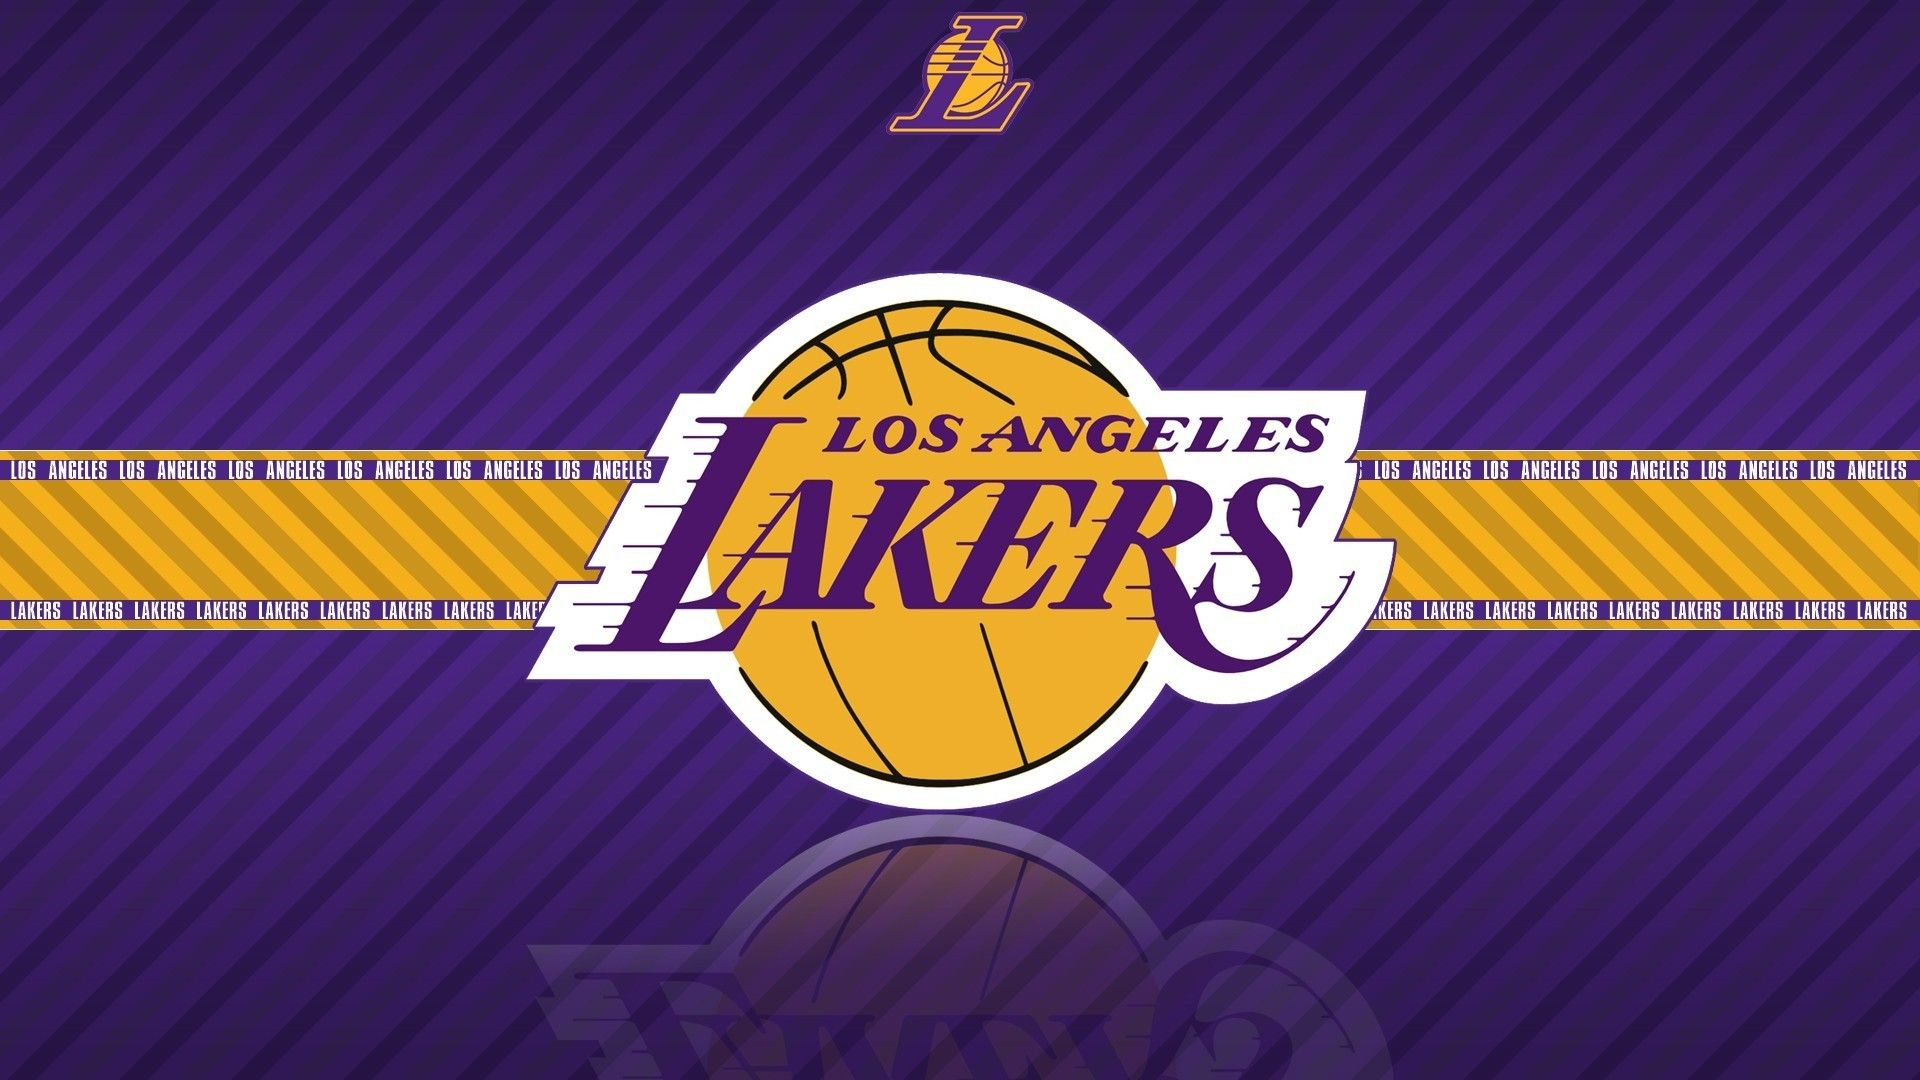 lakers wallpapers 2020